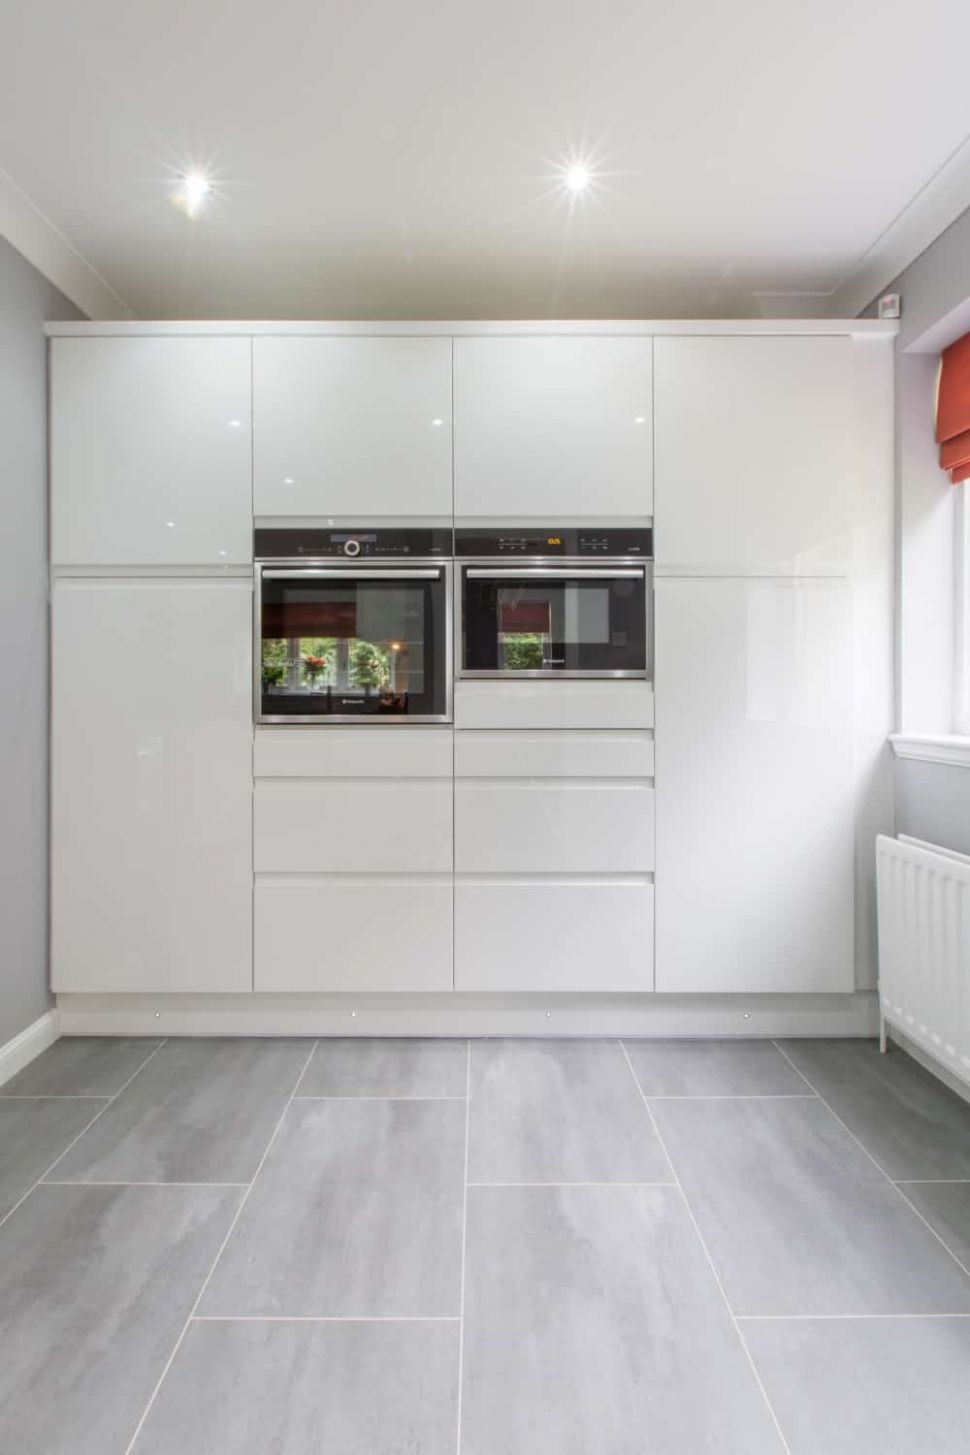 Home Architec Ideas: White And Grey Gloss Kitchen Ideas - kitchen ideas white and grey